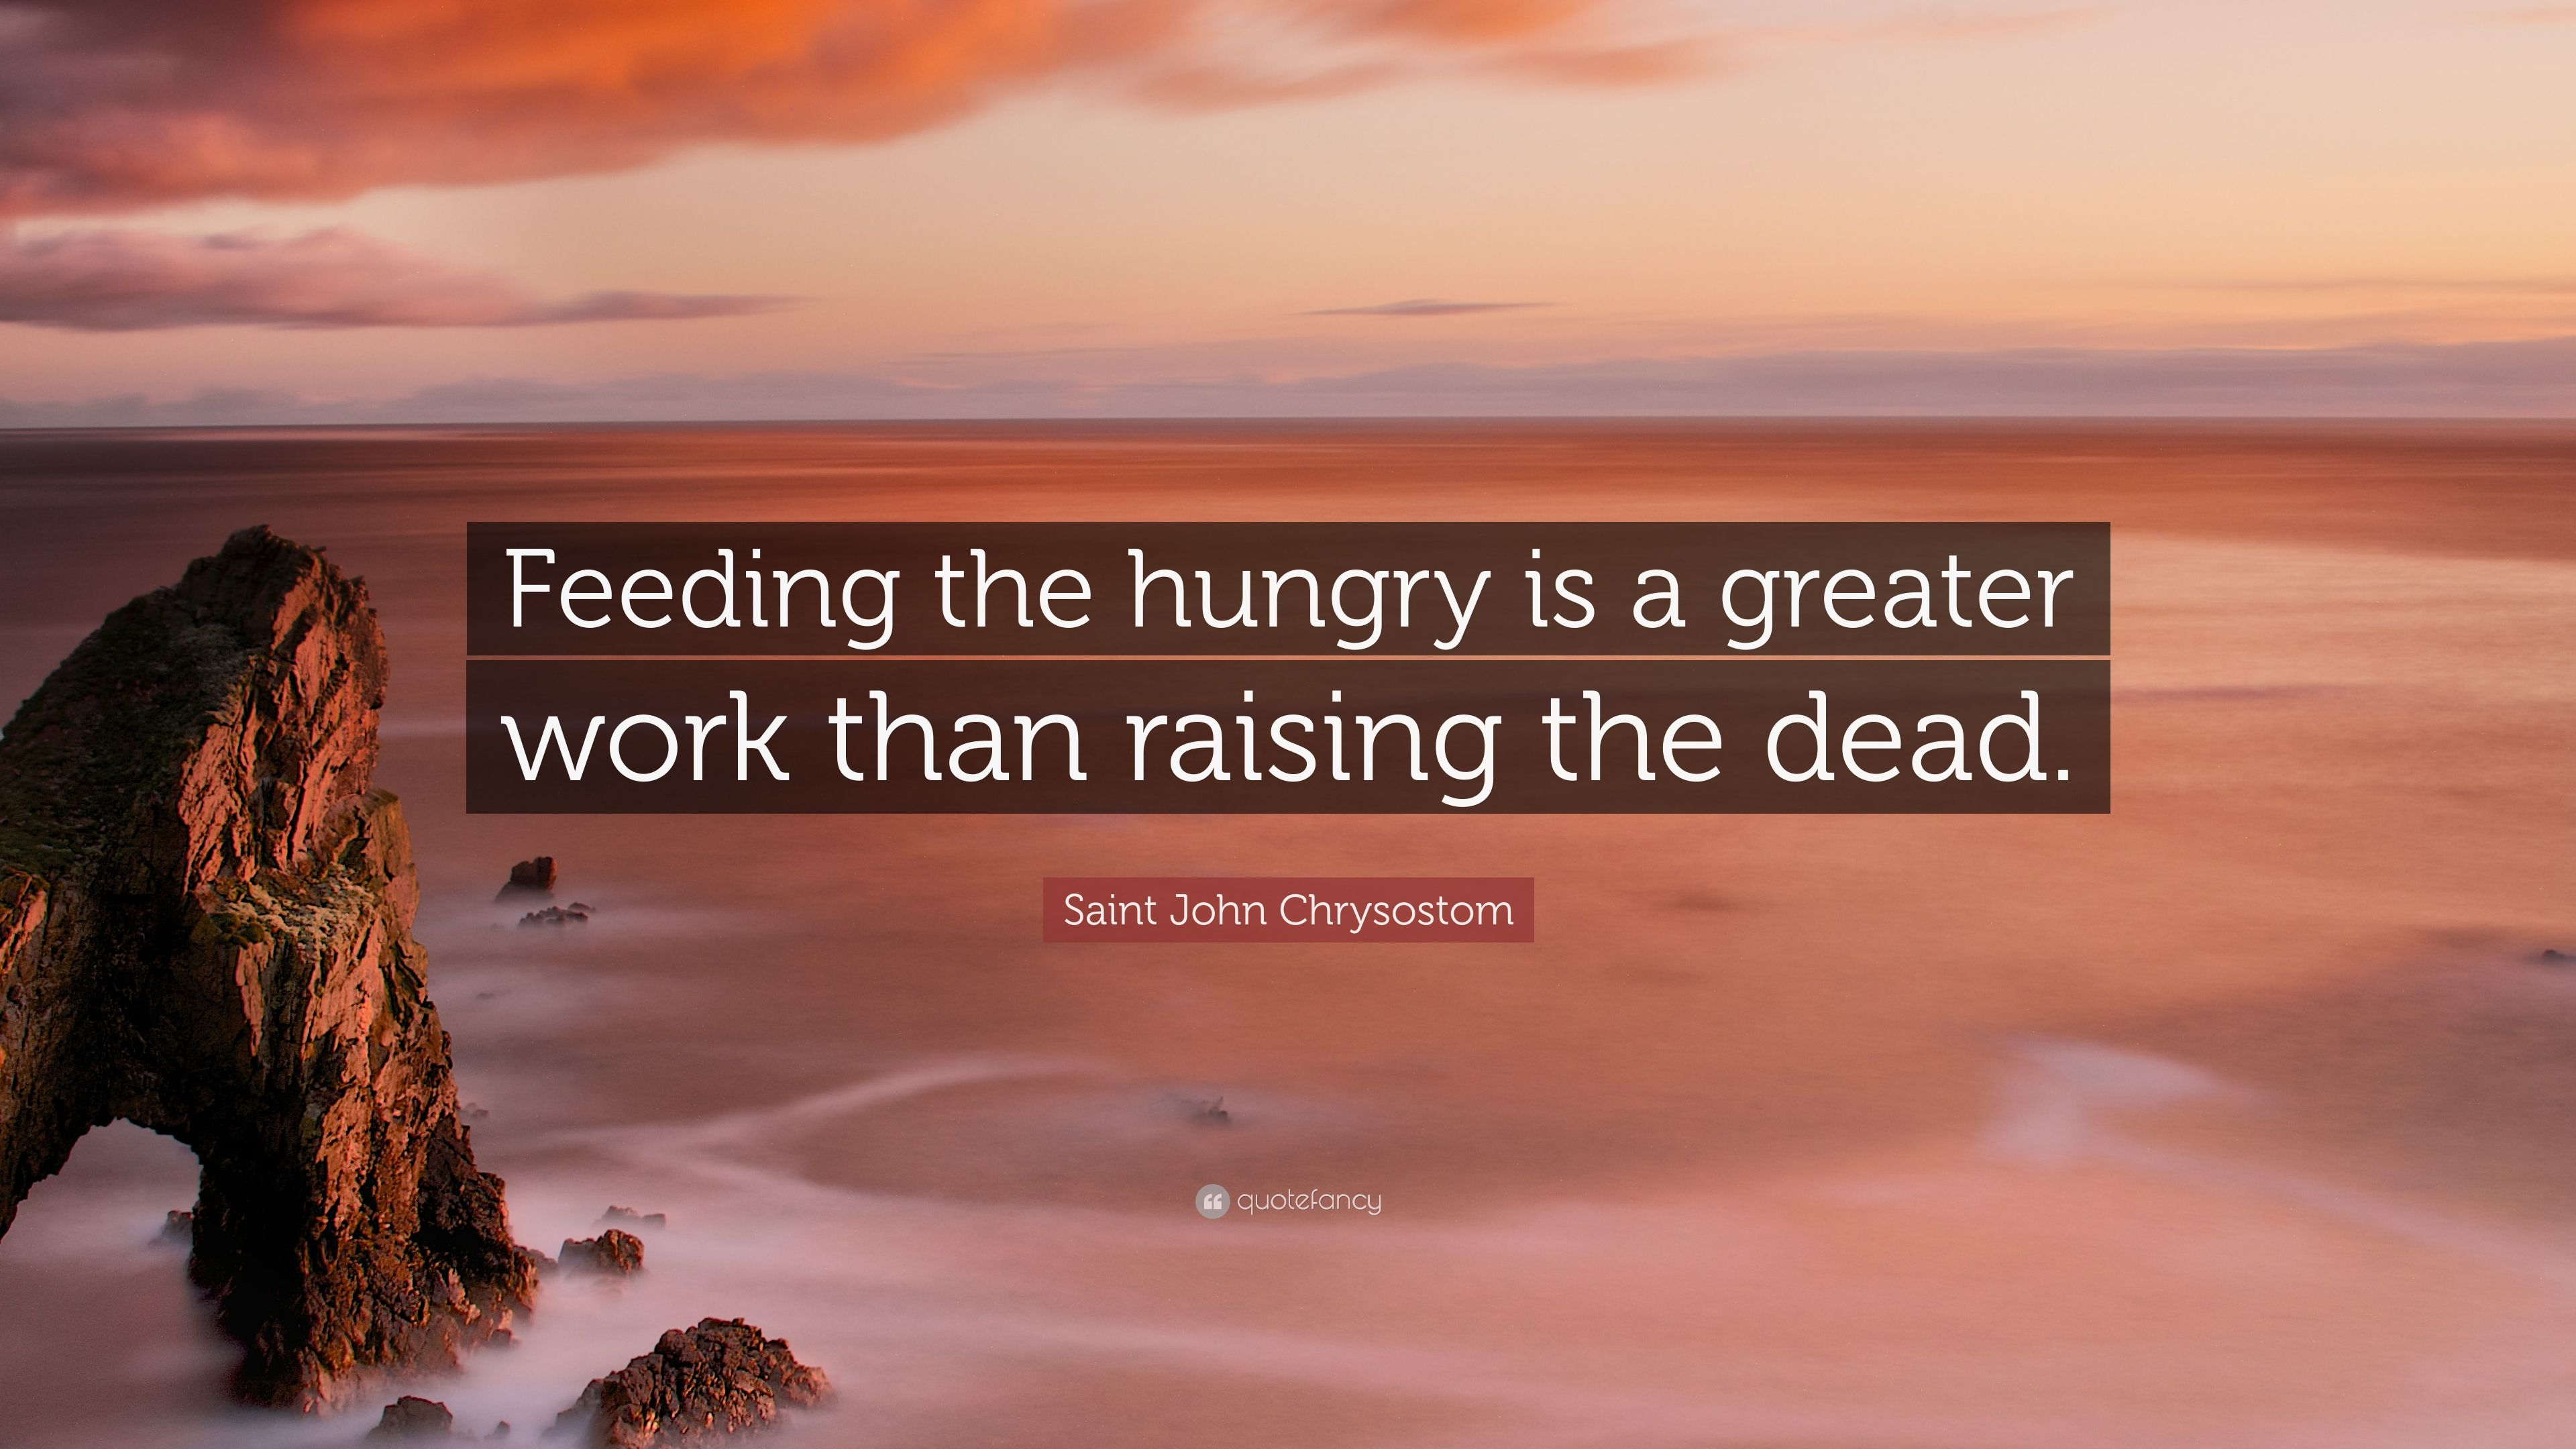 Saint John Chrysostom Quote Feeding The Hungry Is A Greater Work